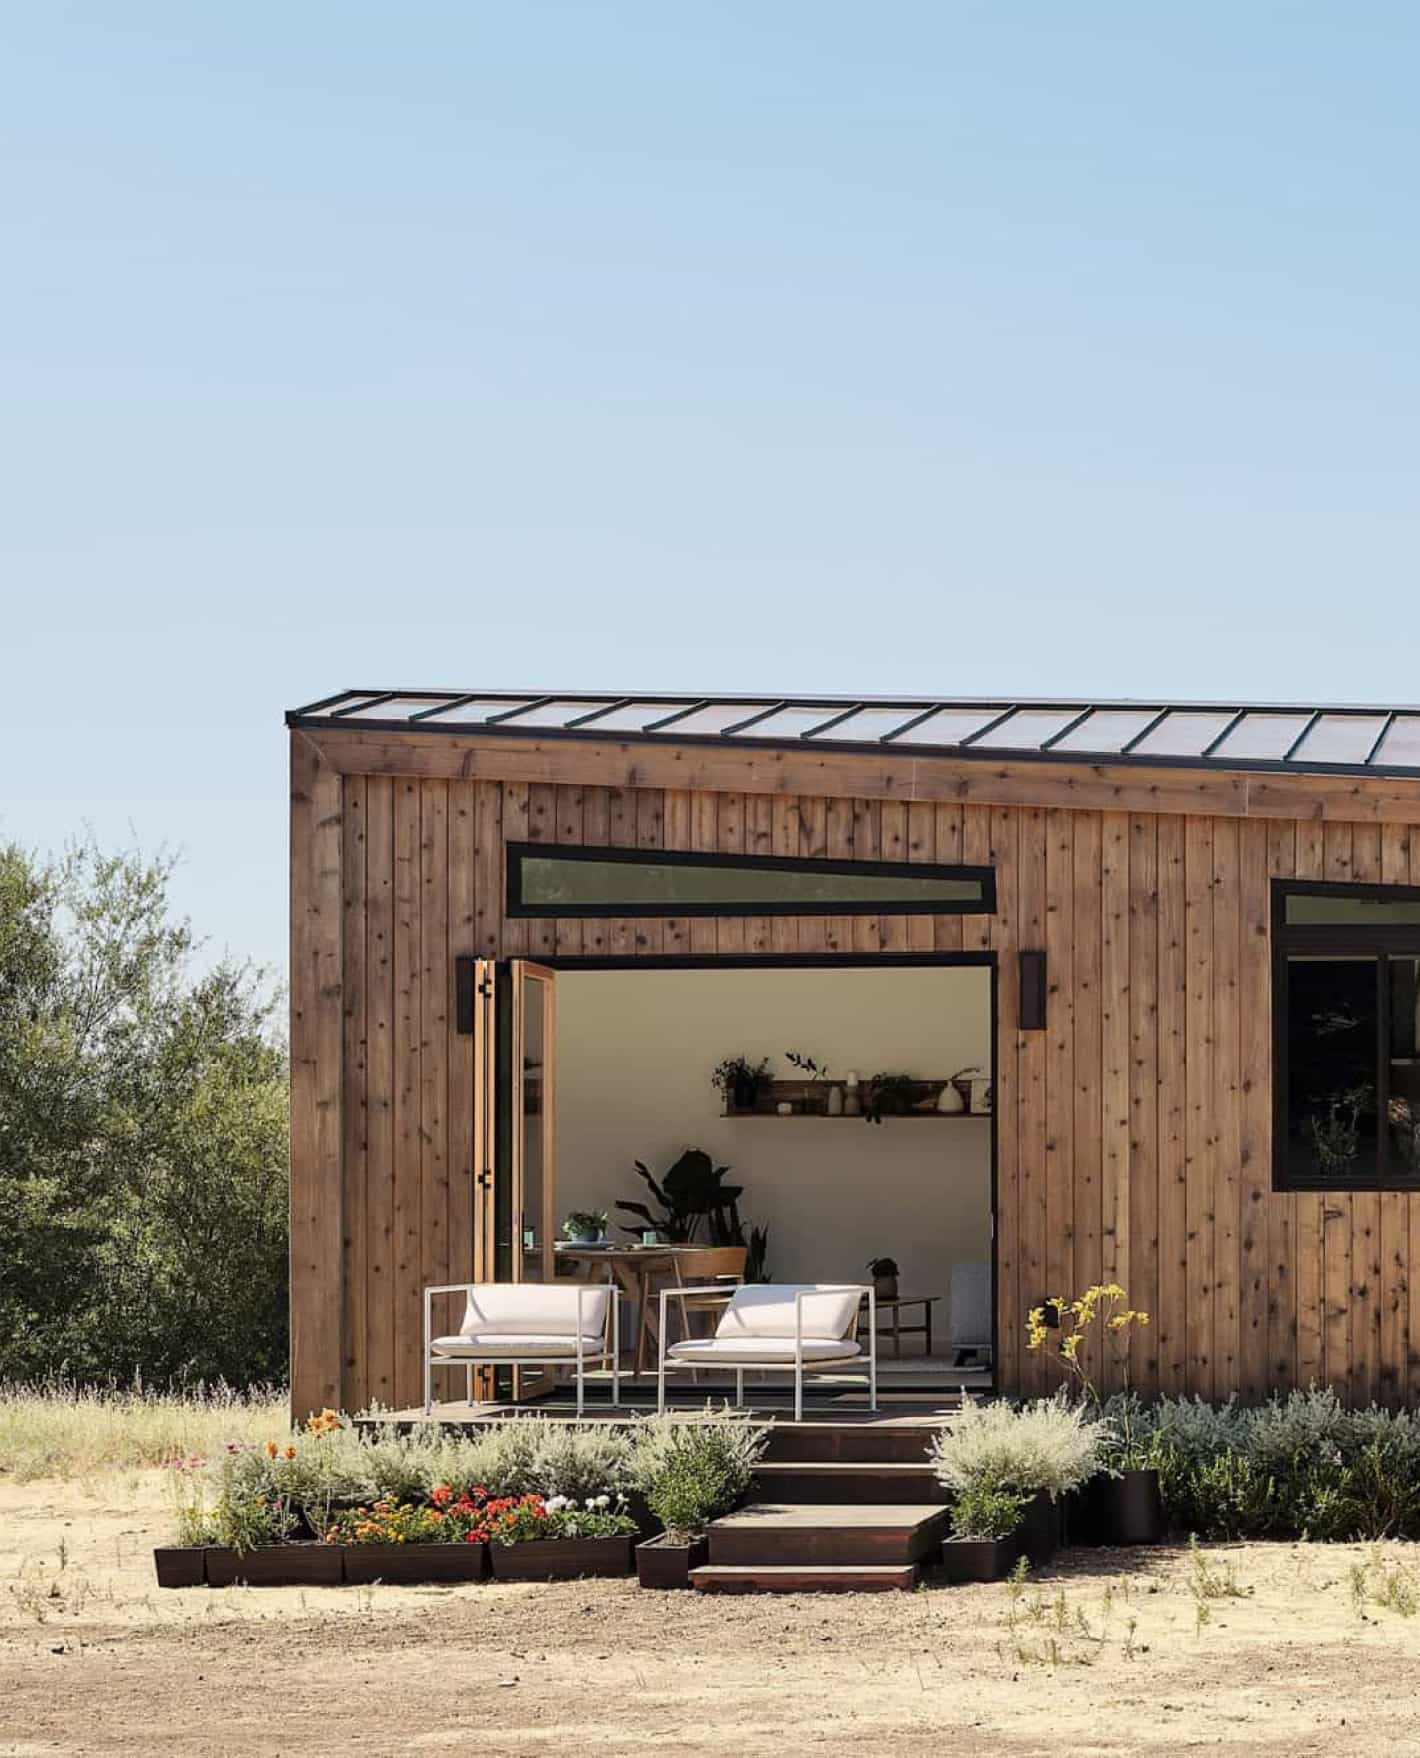 Photograph of a modern storage container home.